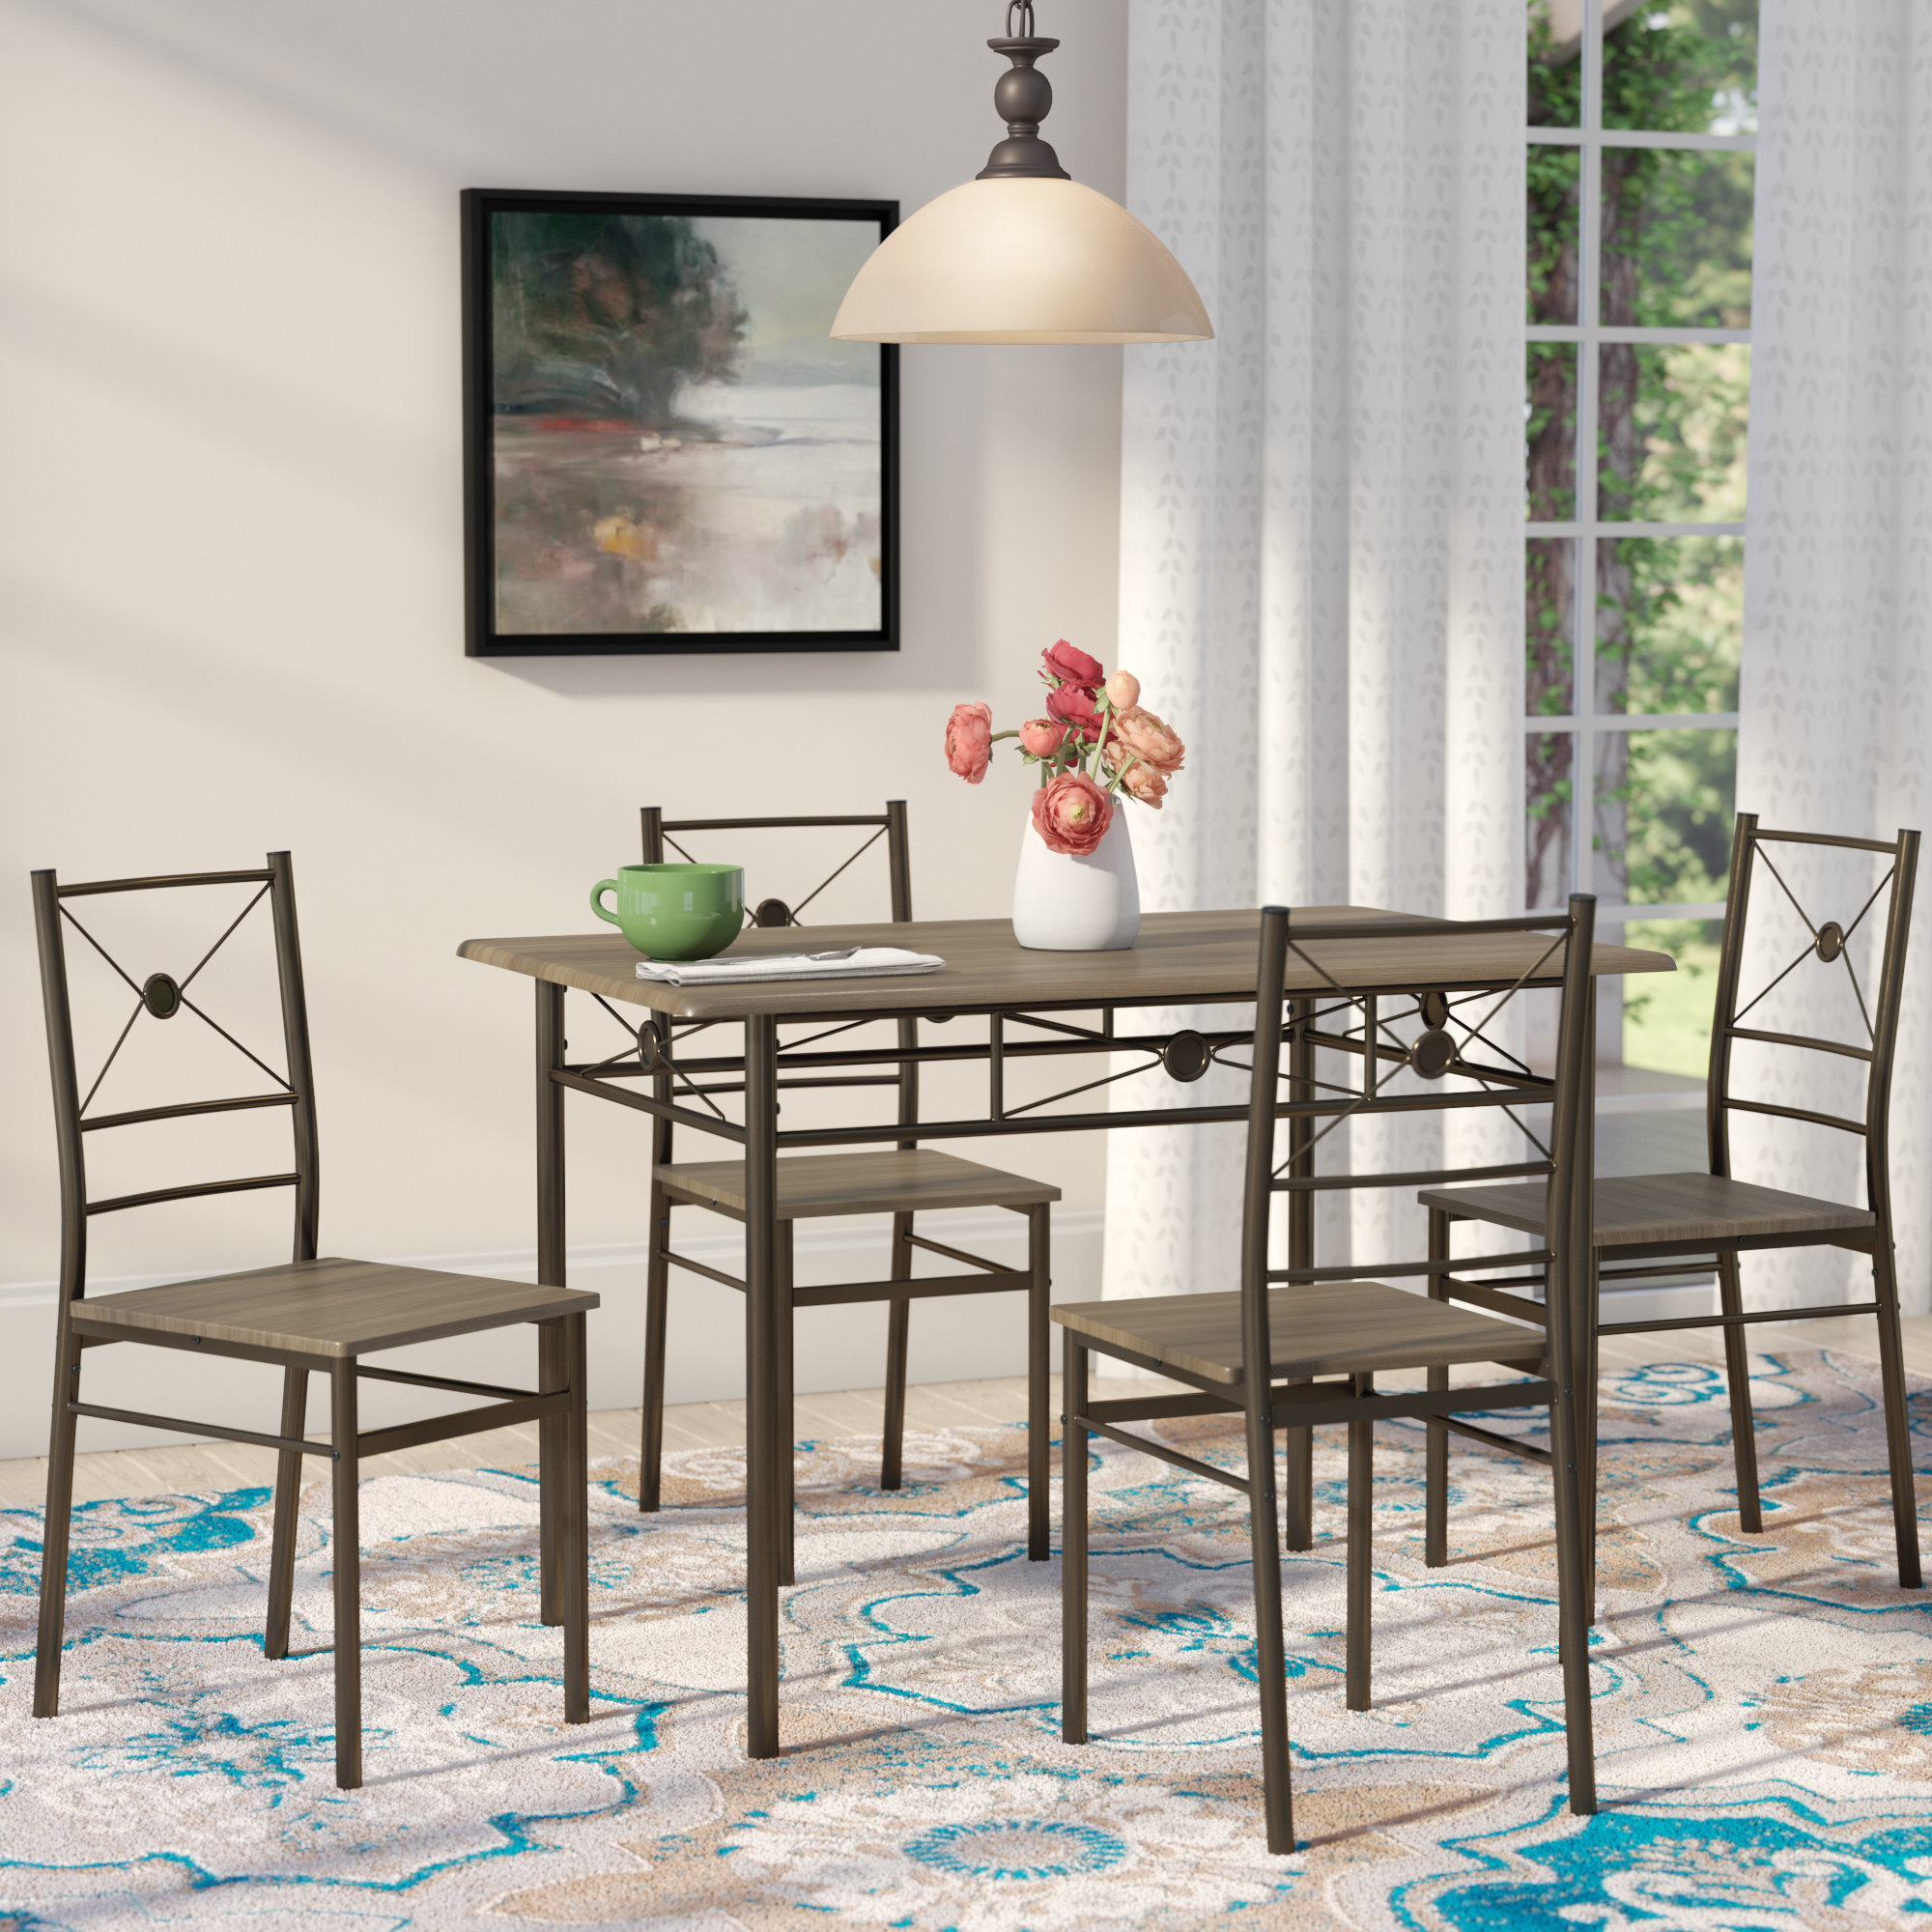 Taulbee 5 Piece Dining Sets Regarding Most Current Andover Mills Kieffer 5 Piece Dining Set & Reviews (Gallery 2 of 20)